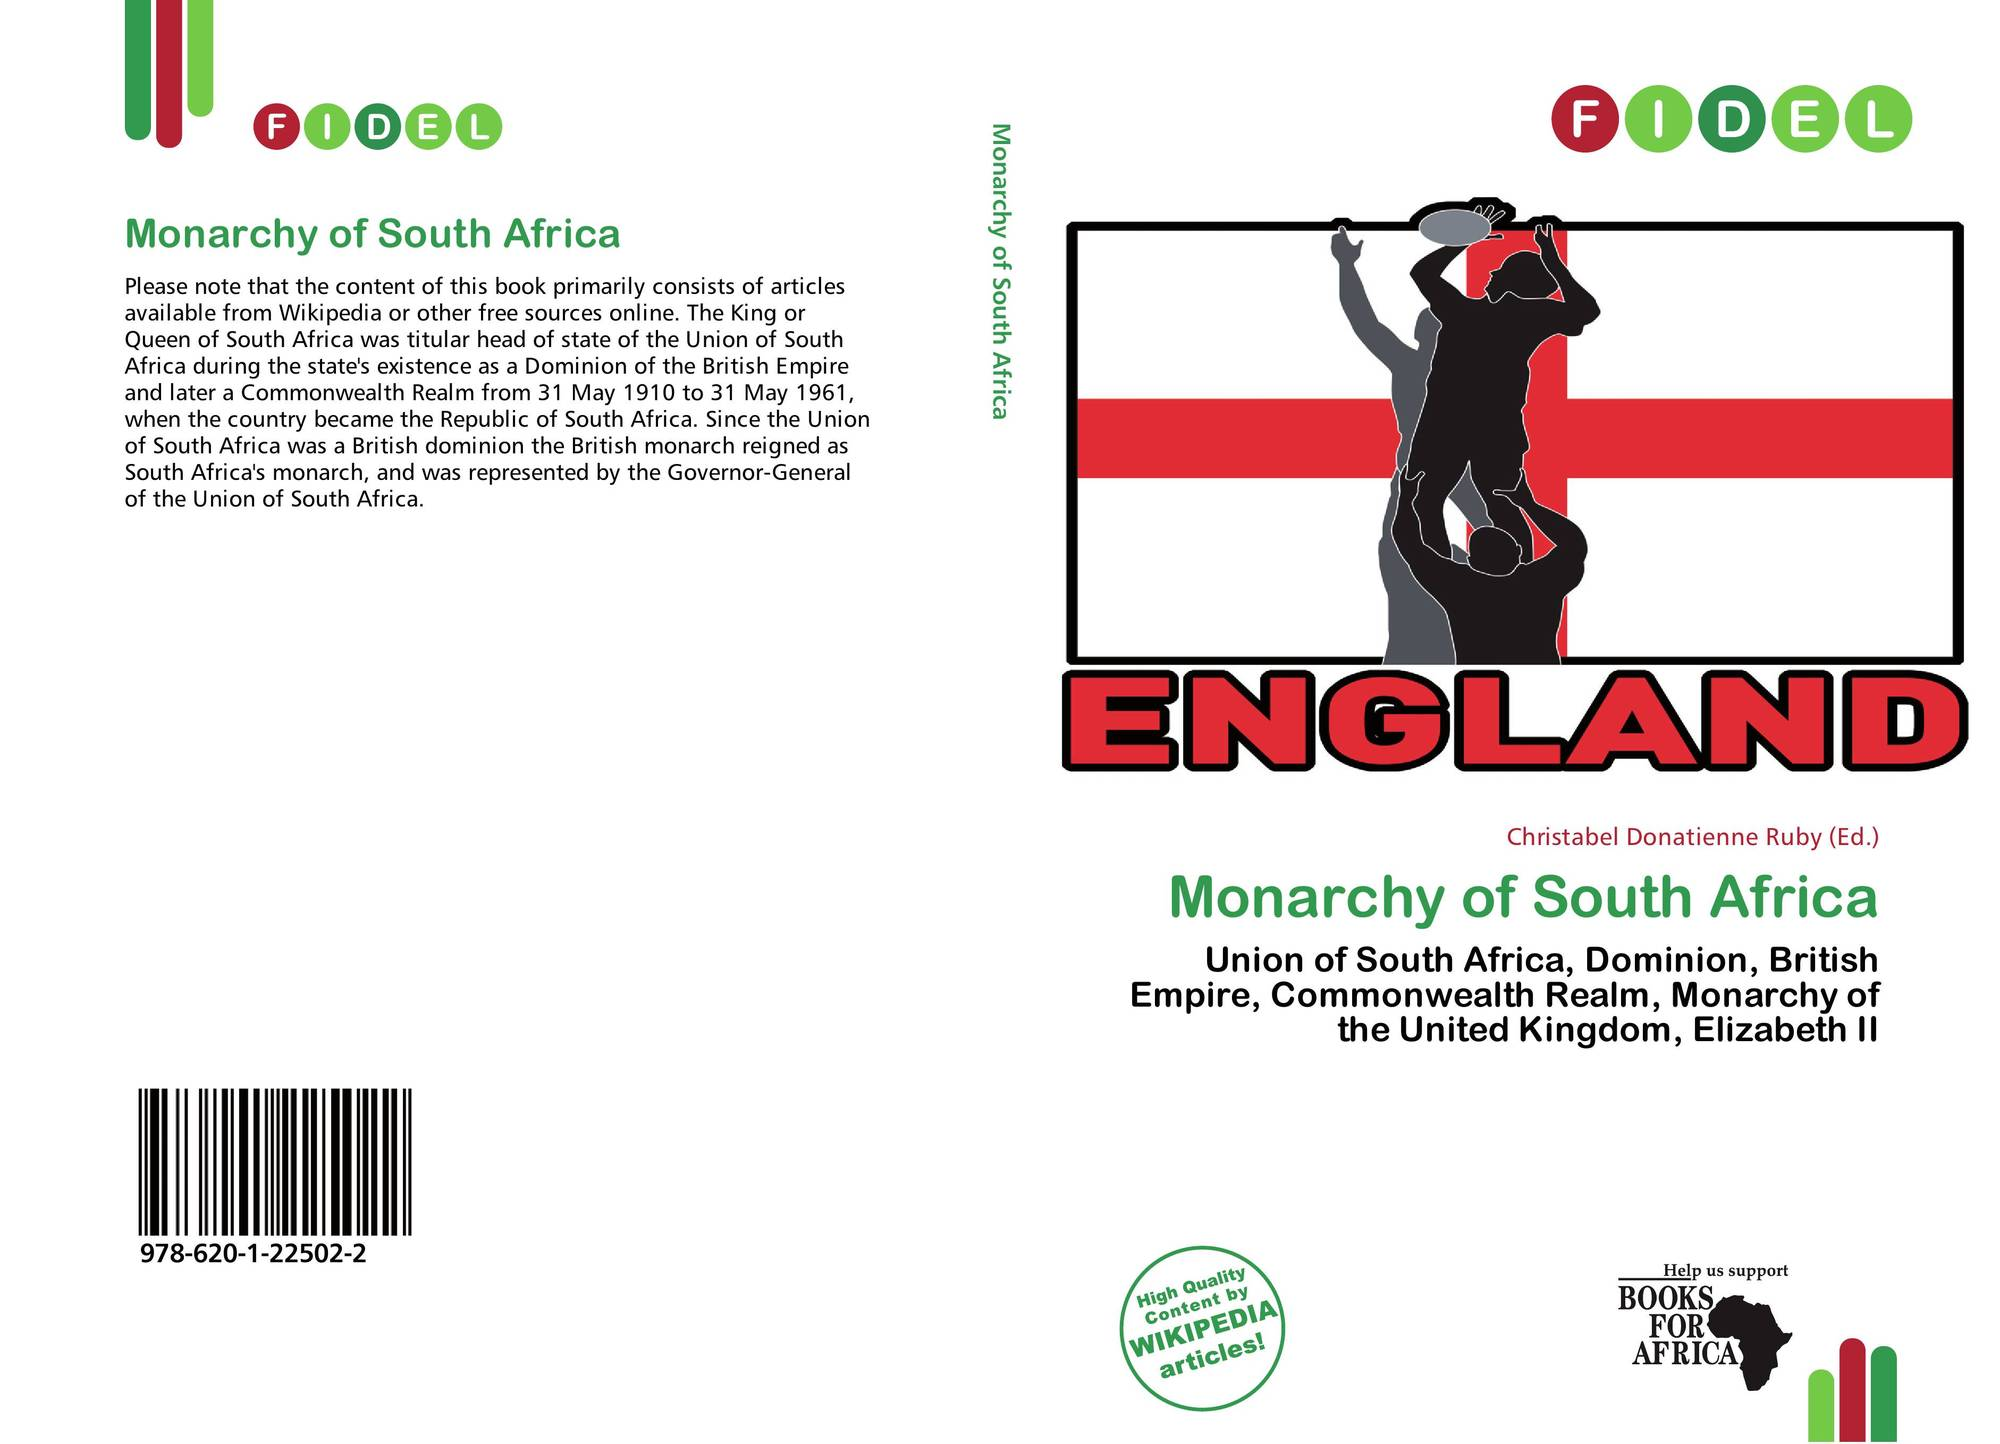 Monarchy of South Africa